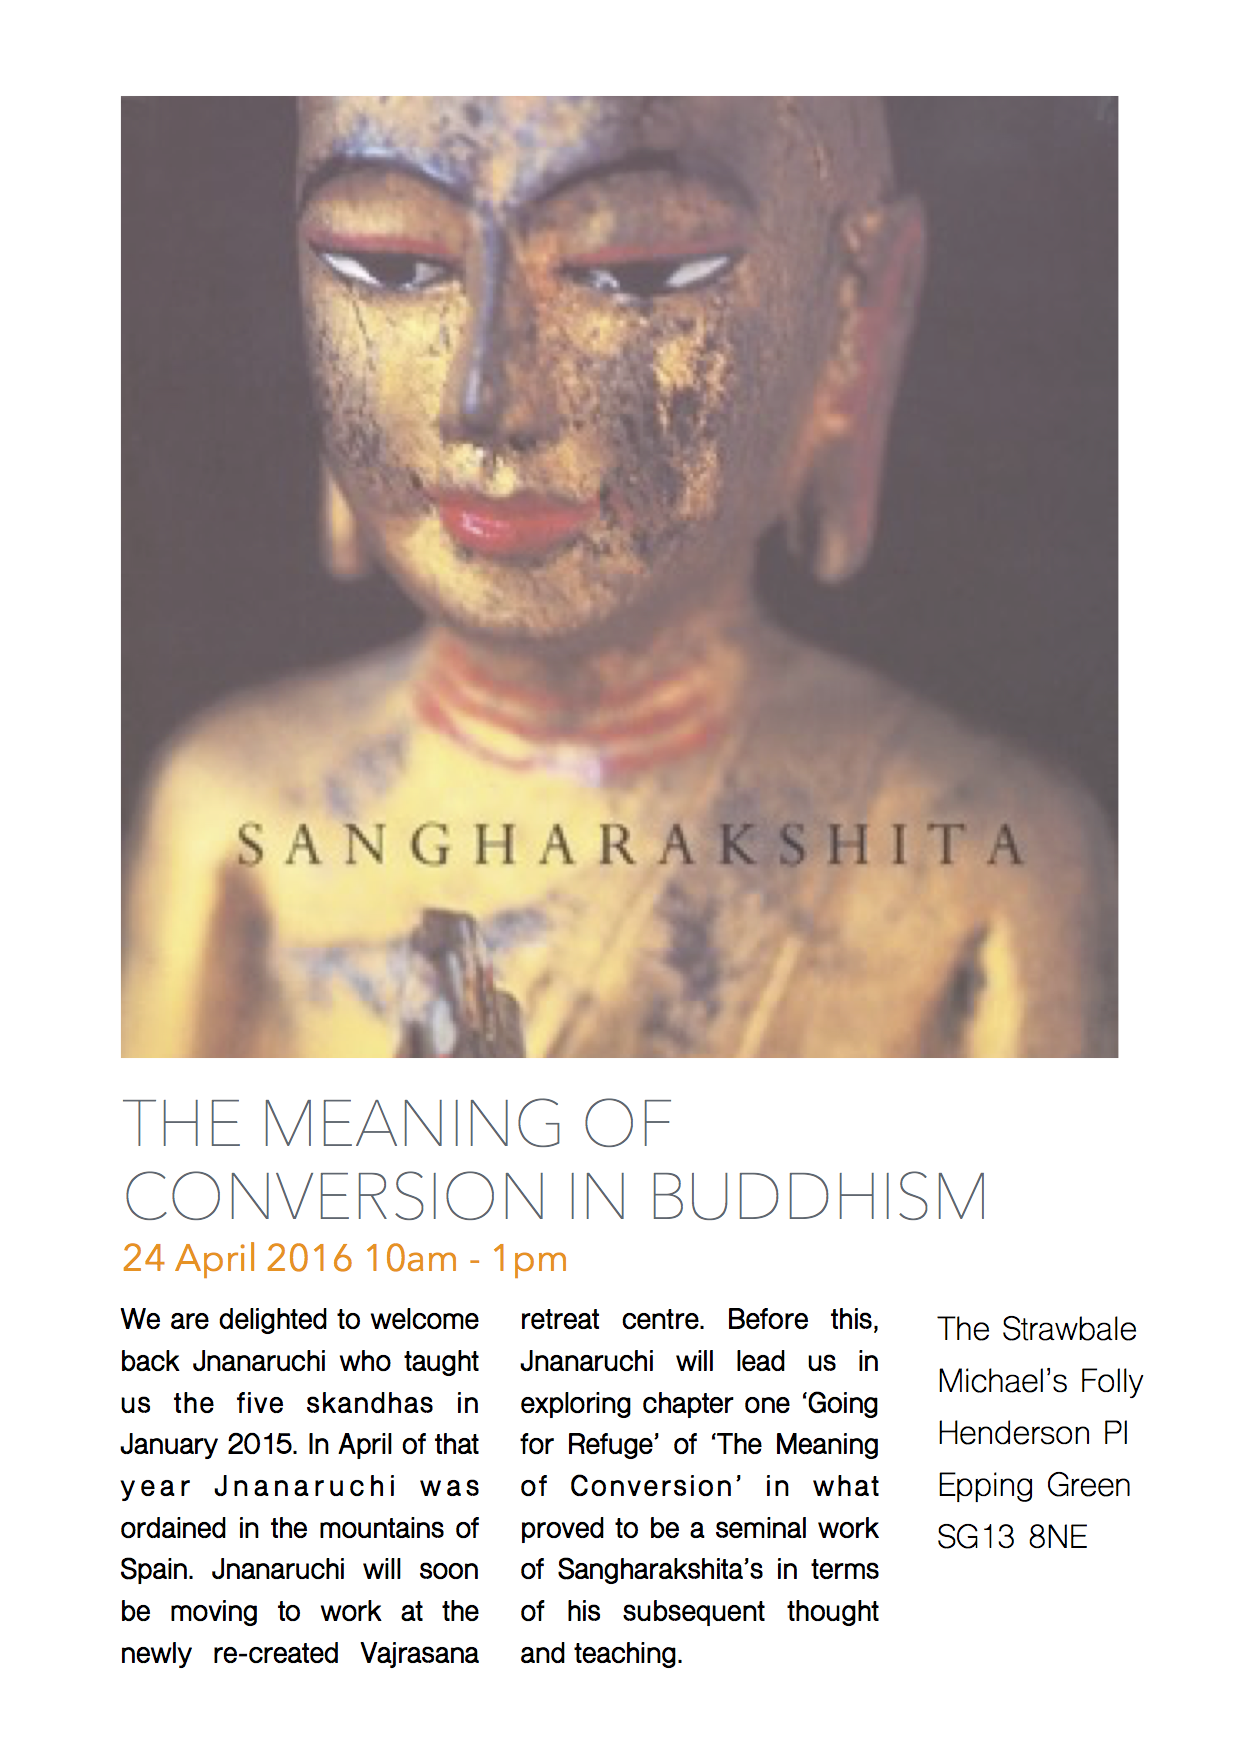 The meaning of conversion PDF